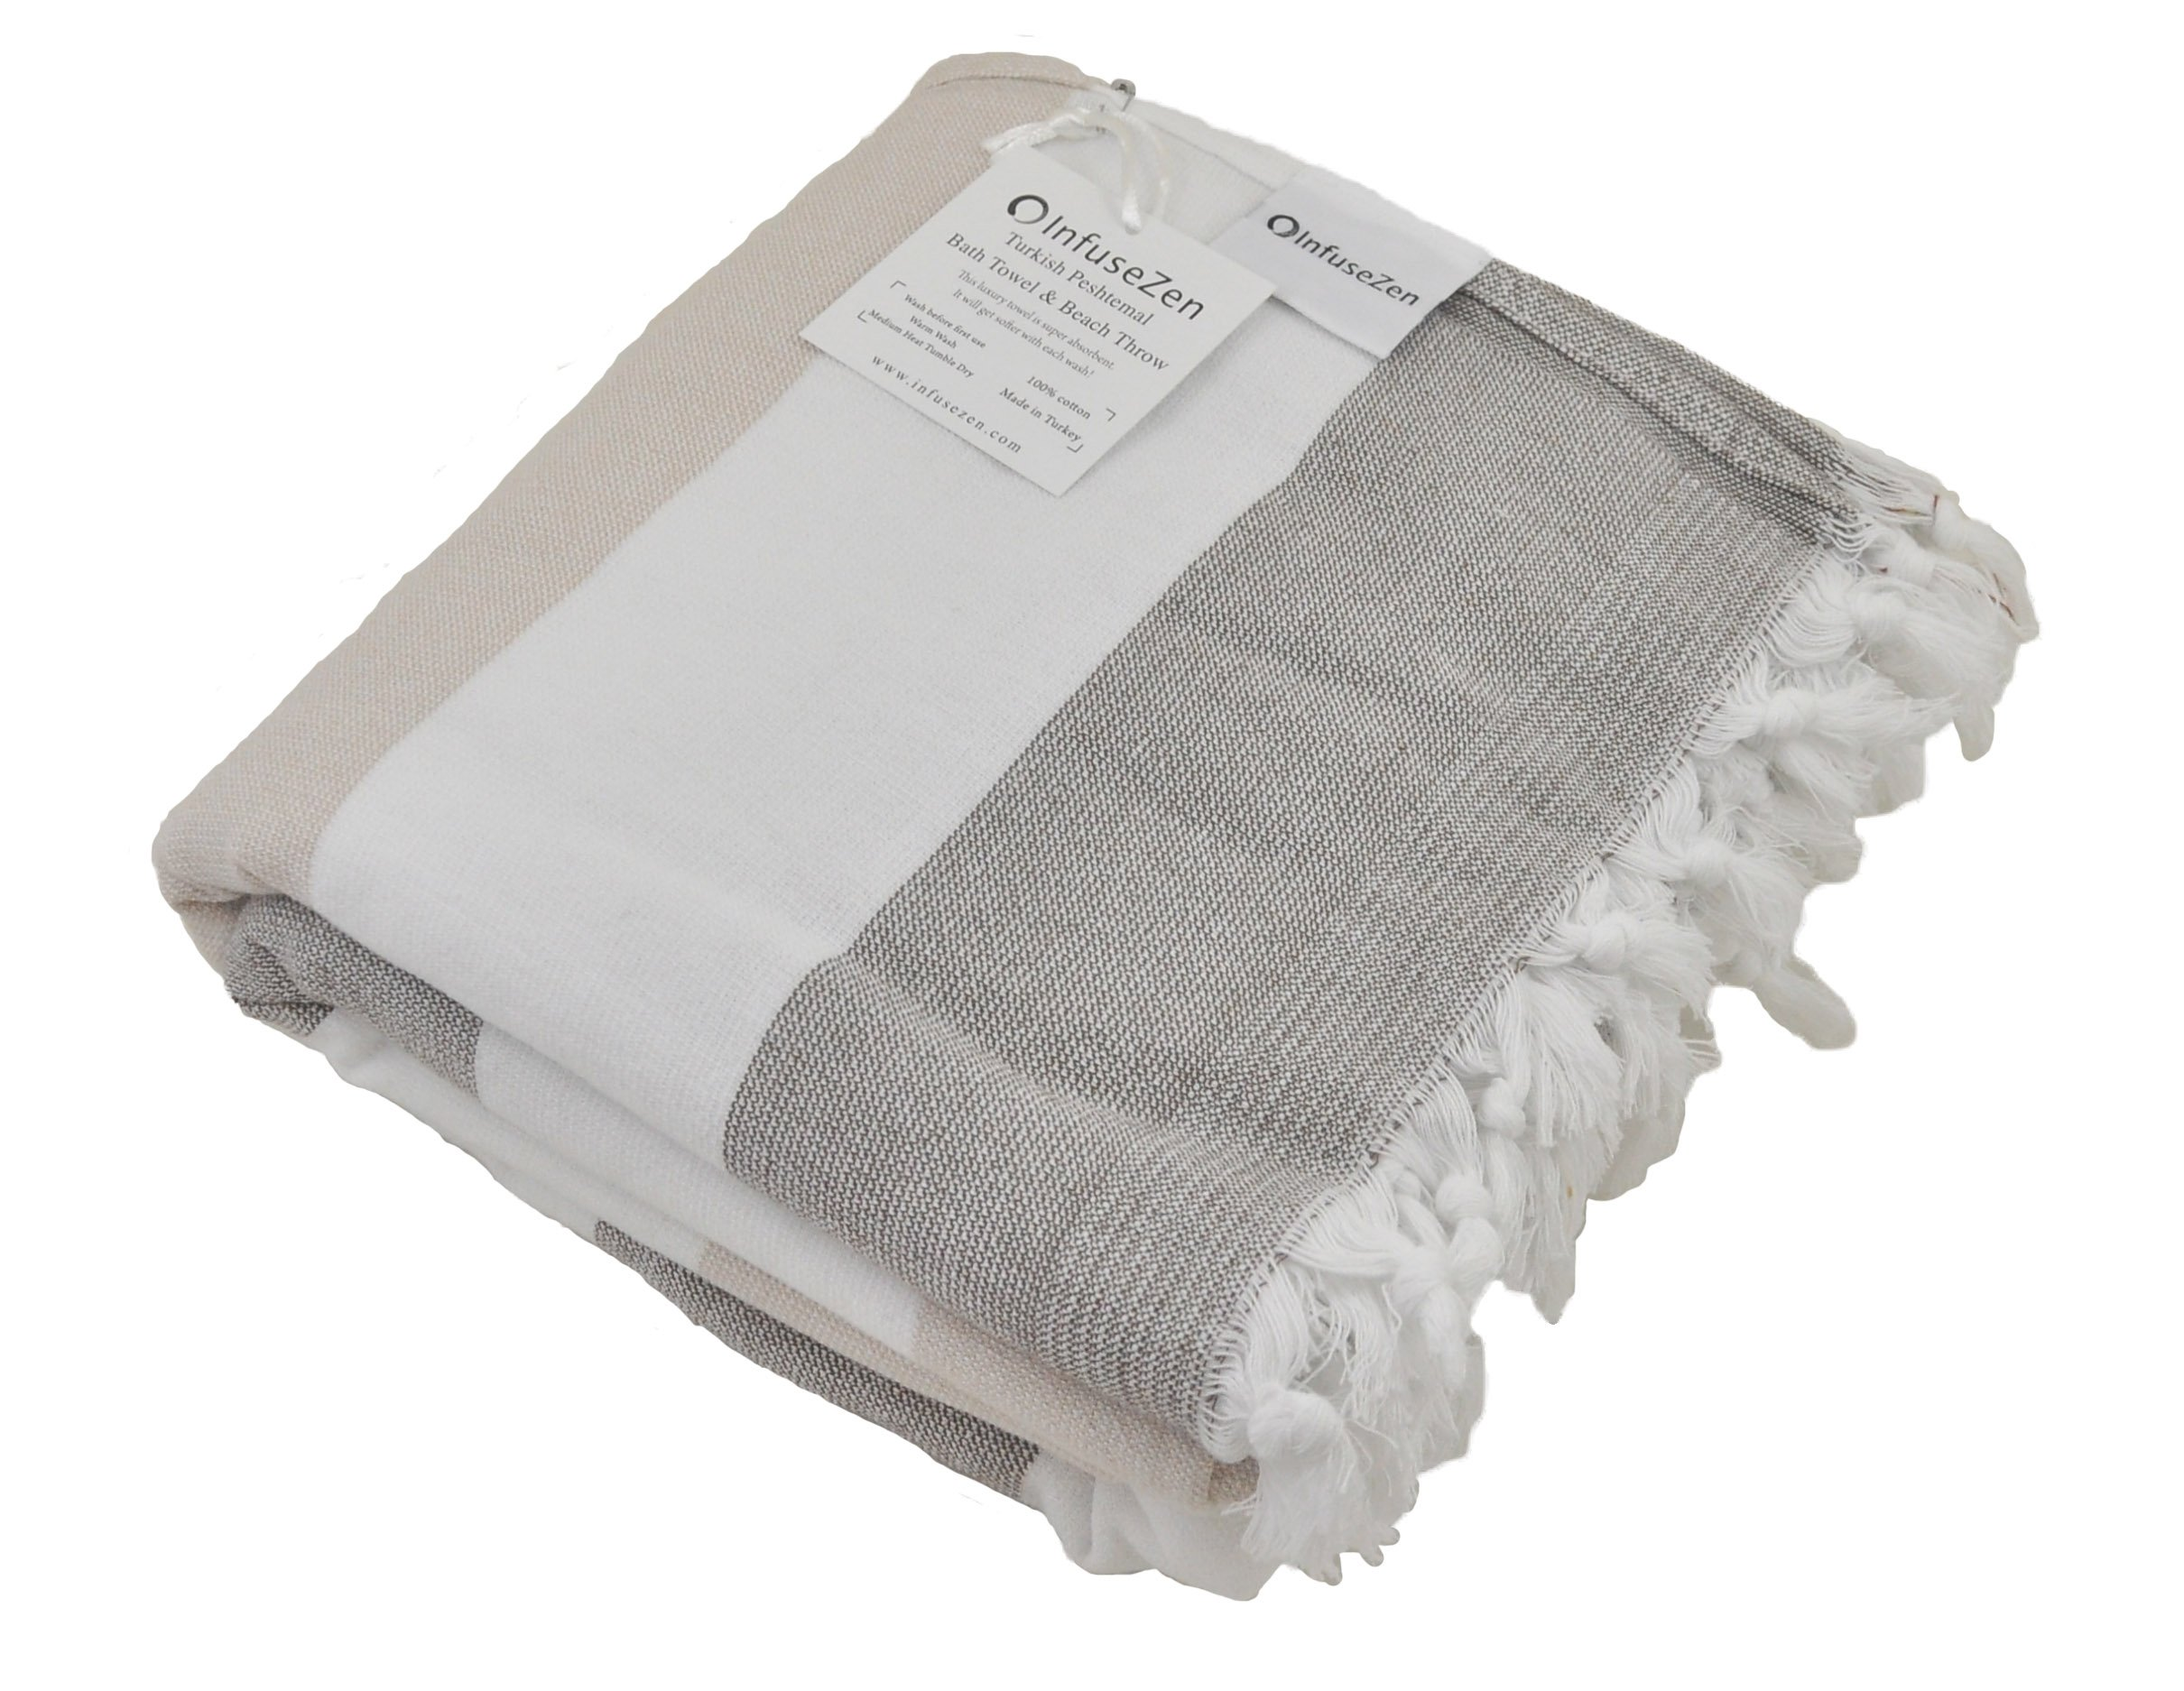 InfuseZen Large Turkish Towel with Soft Terryback, Striped Peshtemal Terry Back Turkish Bath Towel, Gym and Beach Towel, Thin Oversized Hammam Towel, Plus Size Fouta, Big Bath Sheet (Brown and Beige) - Soft terry back Turkish towel - THIN, lightweight, absorbent and fast drying The best of both worlds - enjoy the luxury of a Turkish Peshtemal towel with the comfort of a terry towel Great as a bath towel, beach towel, gym towel or towel for camping, hiking or picnics - bathroom-linens, bathroom, bath-towels - 81g1 c1nbvL -